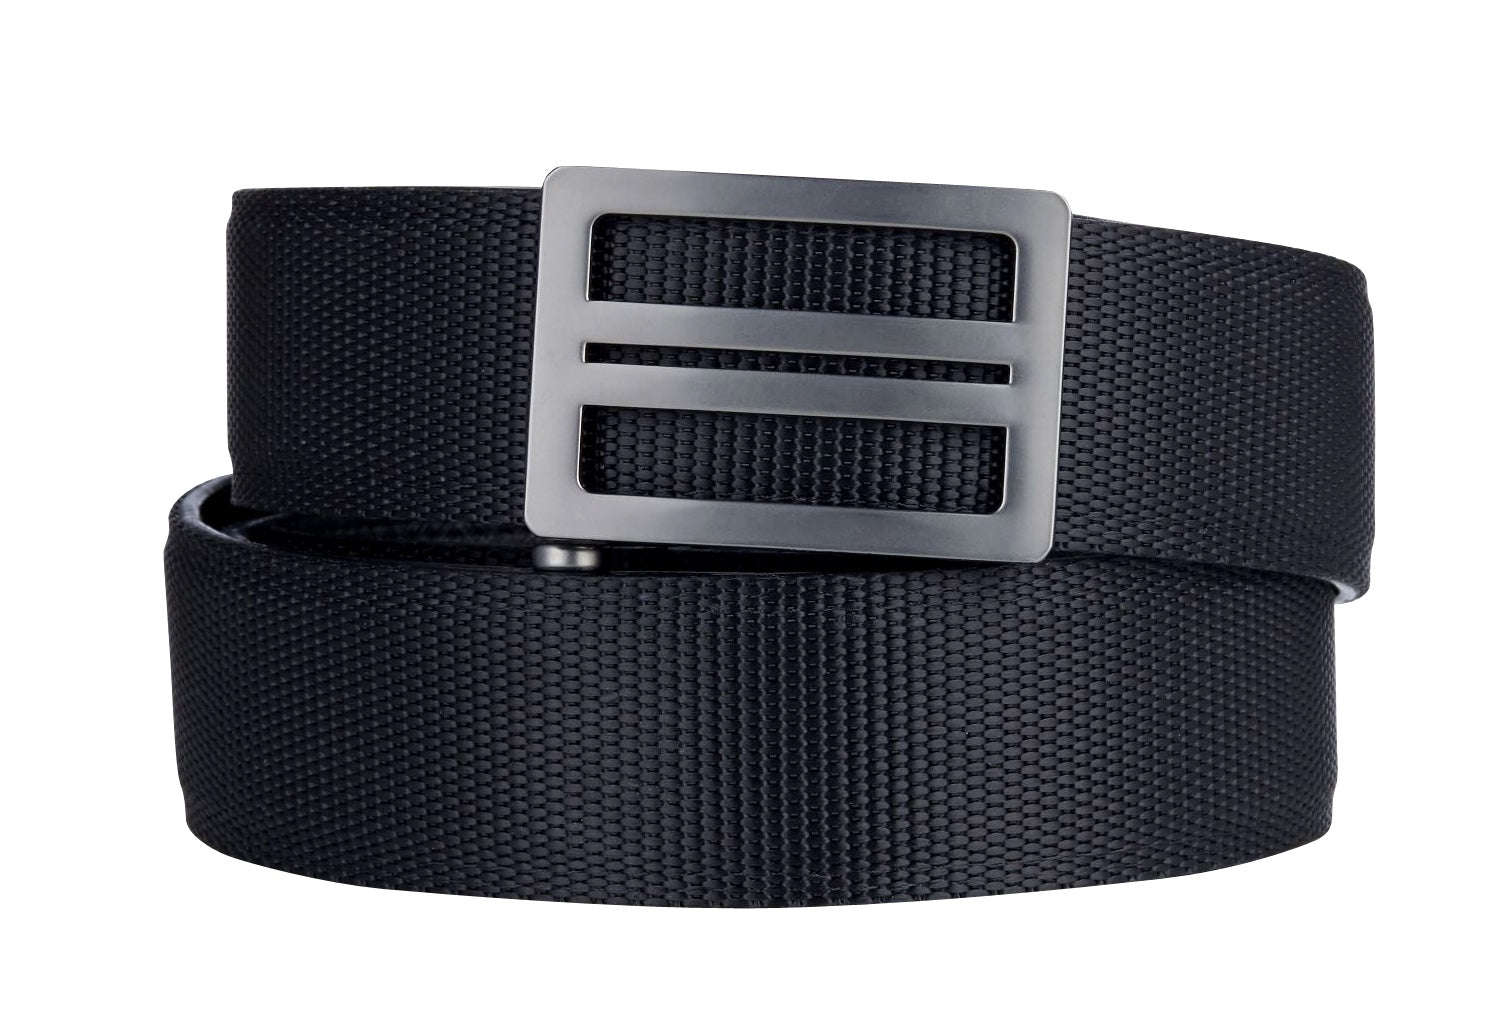 INTRODUCING OUR NEW KORE TACTICAL GUN BELT